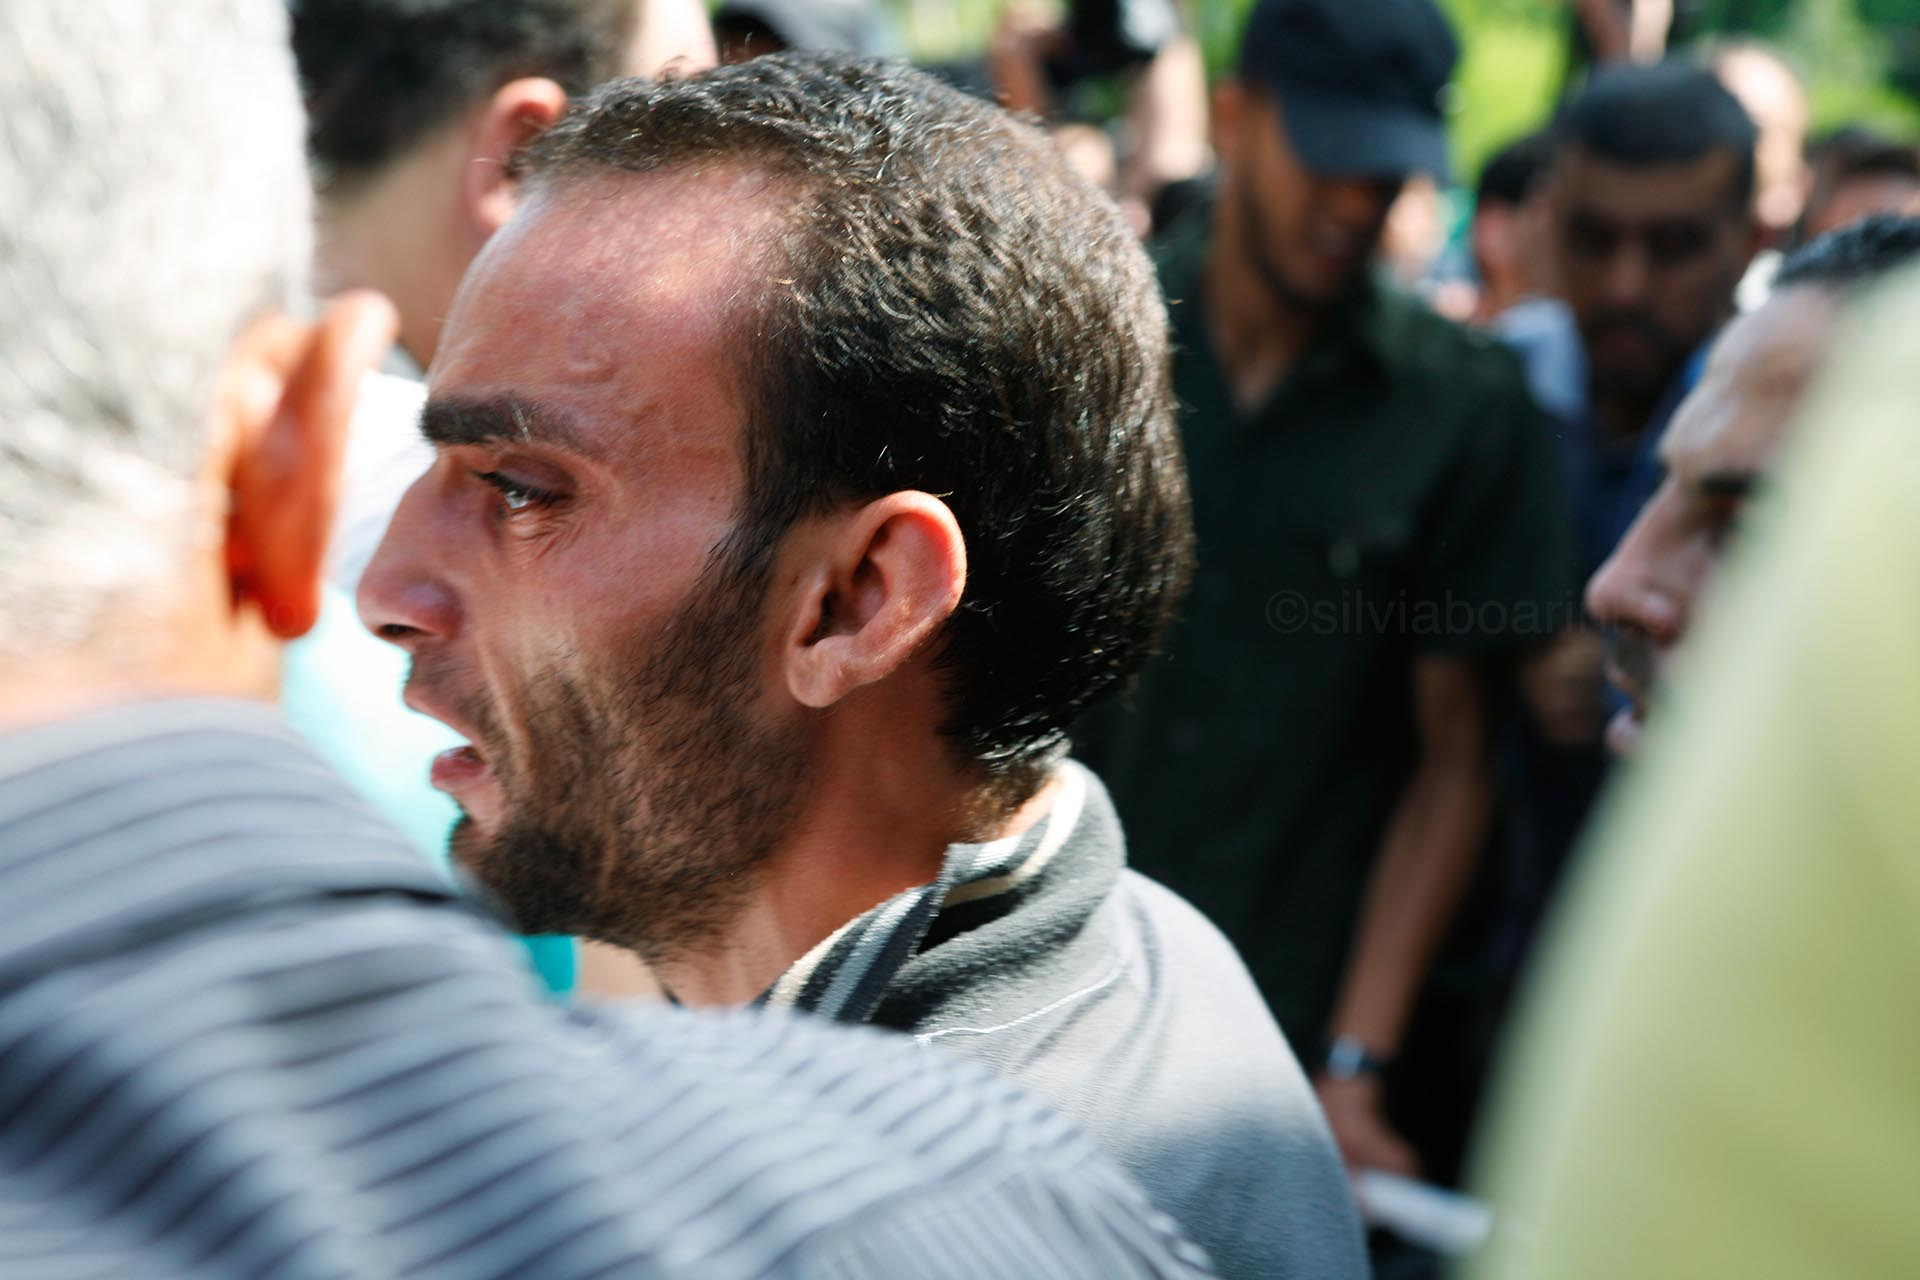 A distraught man outside the Shifa morgue. Gaza, 20 July 2014